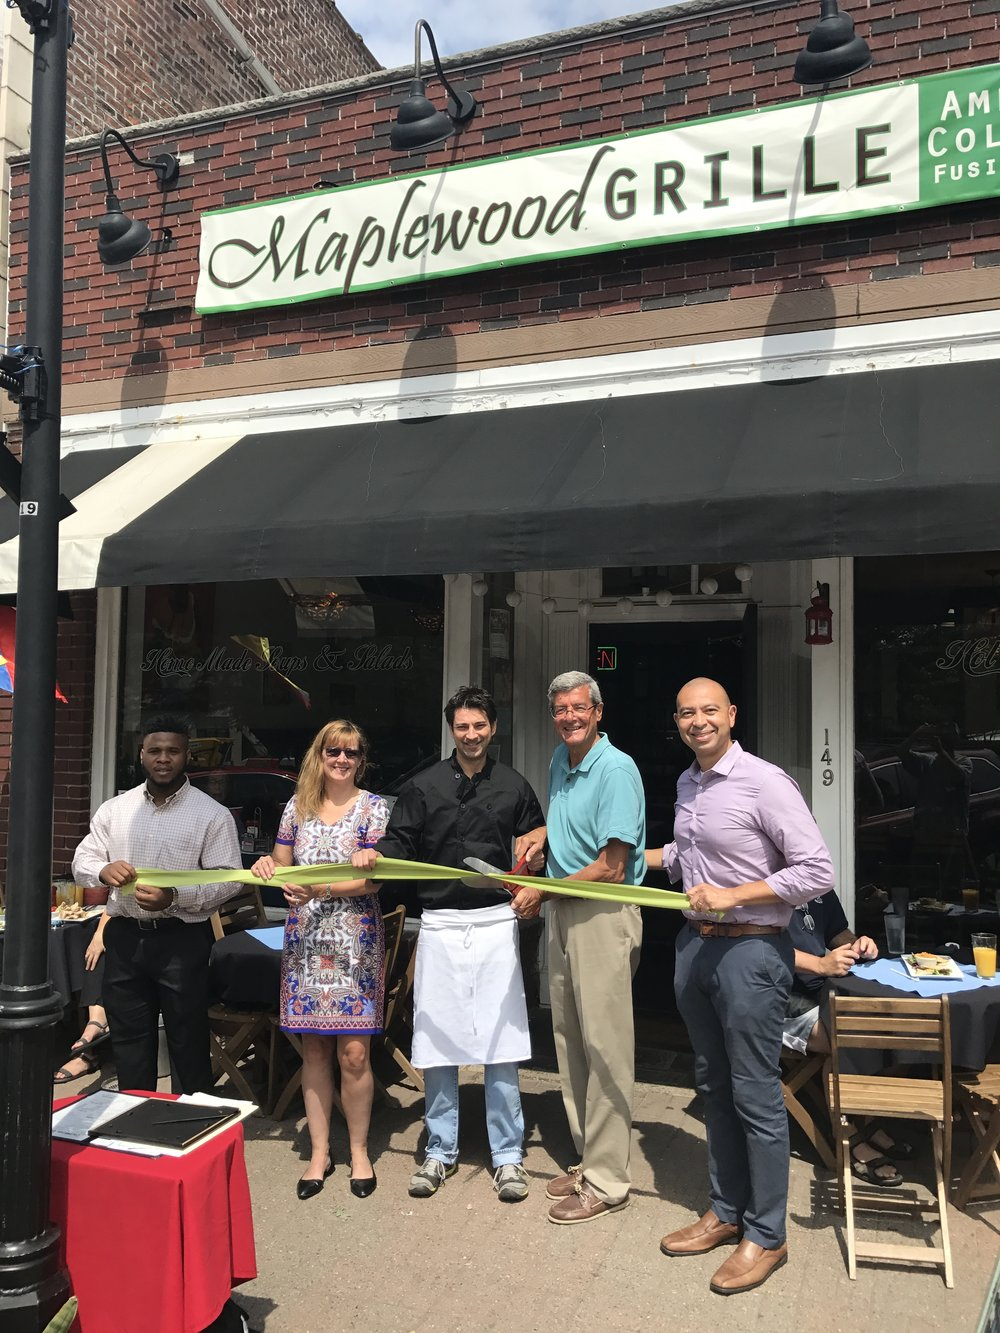 Left to right -- Uche Uneze (Maplewood Green Business intern), Sheila Baker Gujral (Maplewood Environmental Advisory Committee), Andres Ulloa (Maplewood Grille), Mayor Vic DeLuca, and Township Committeeman Frank McGehee